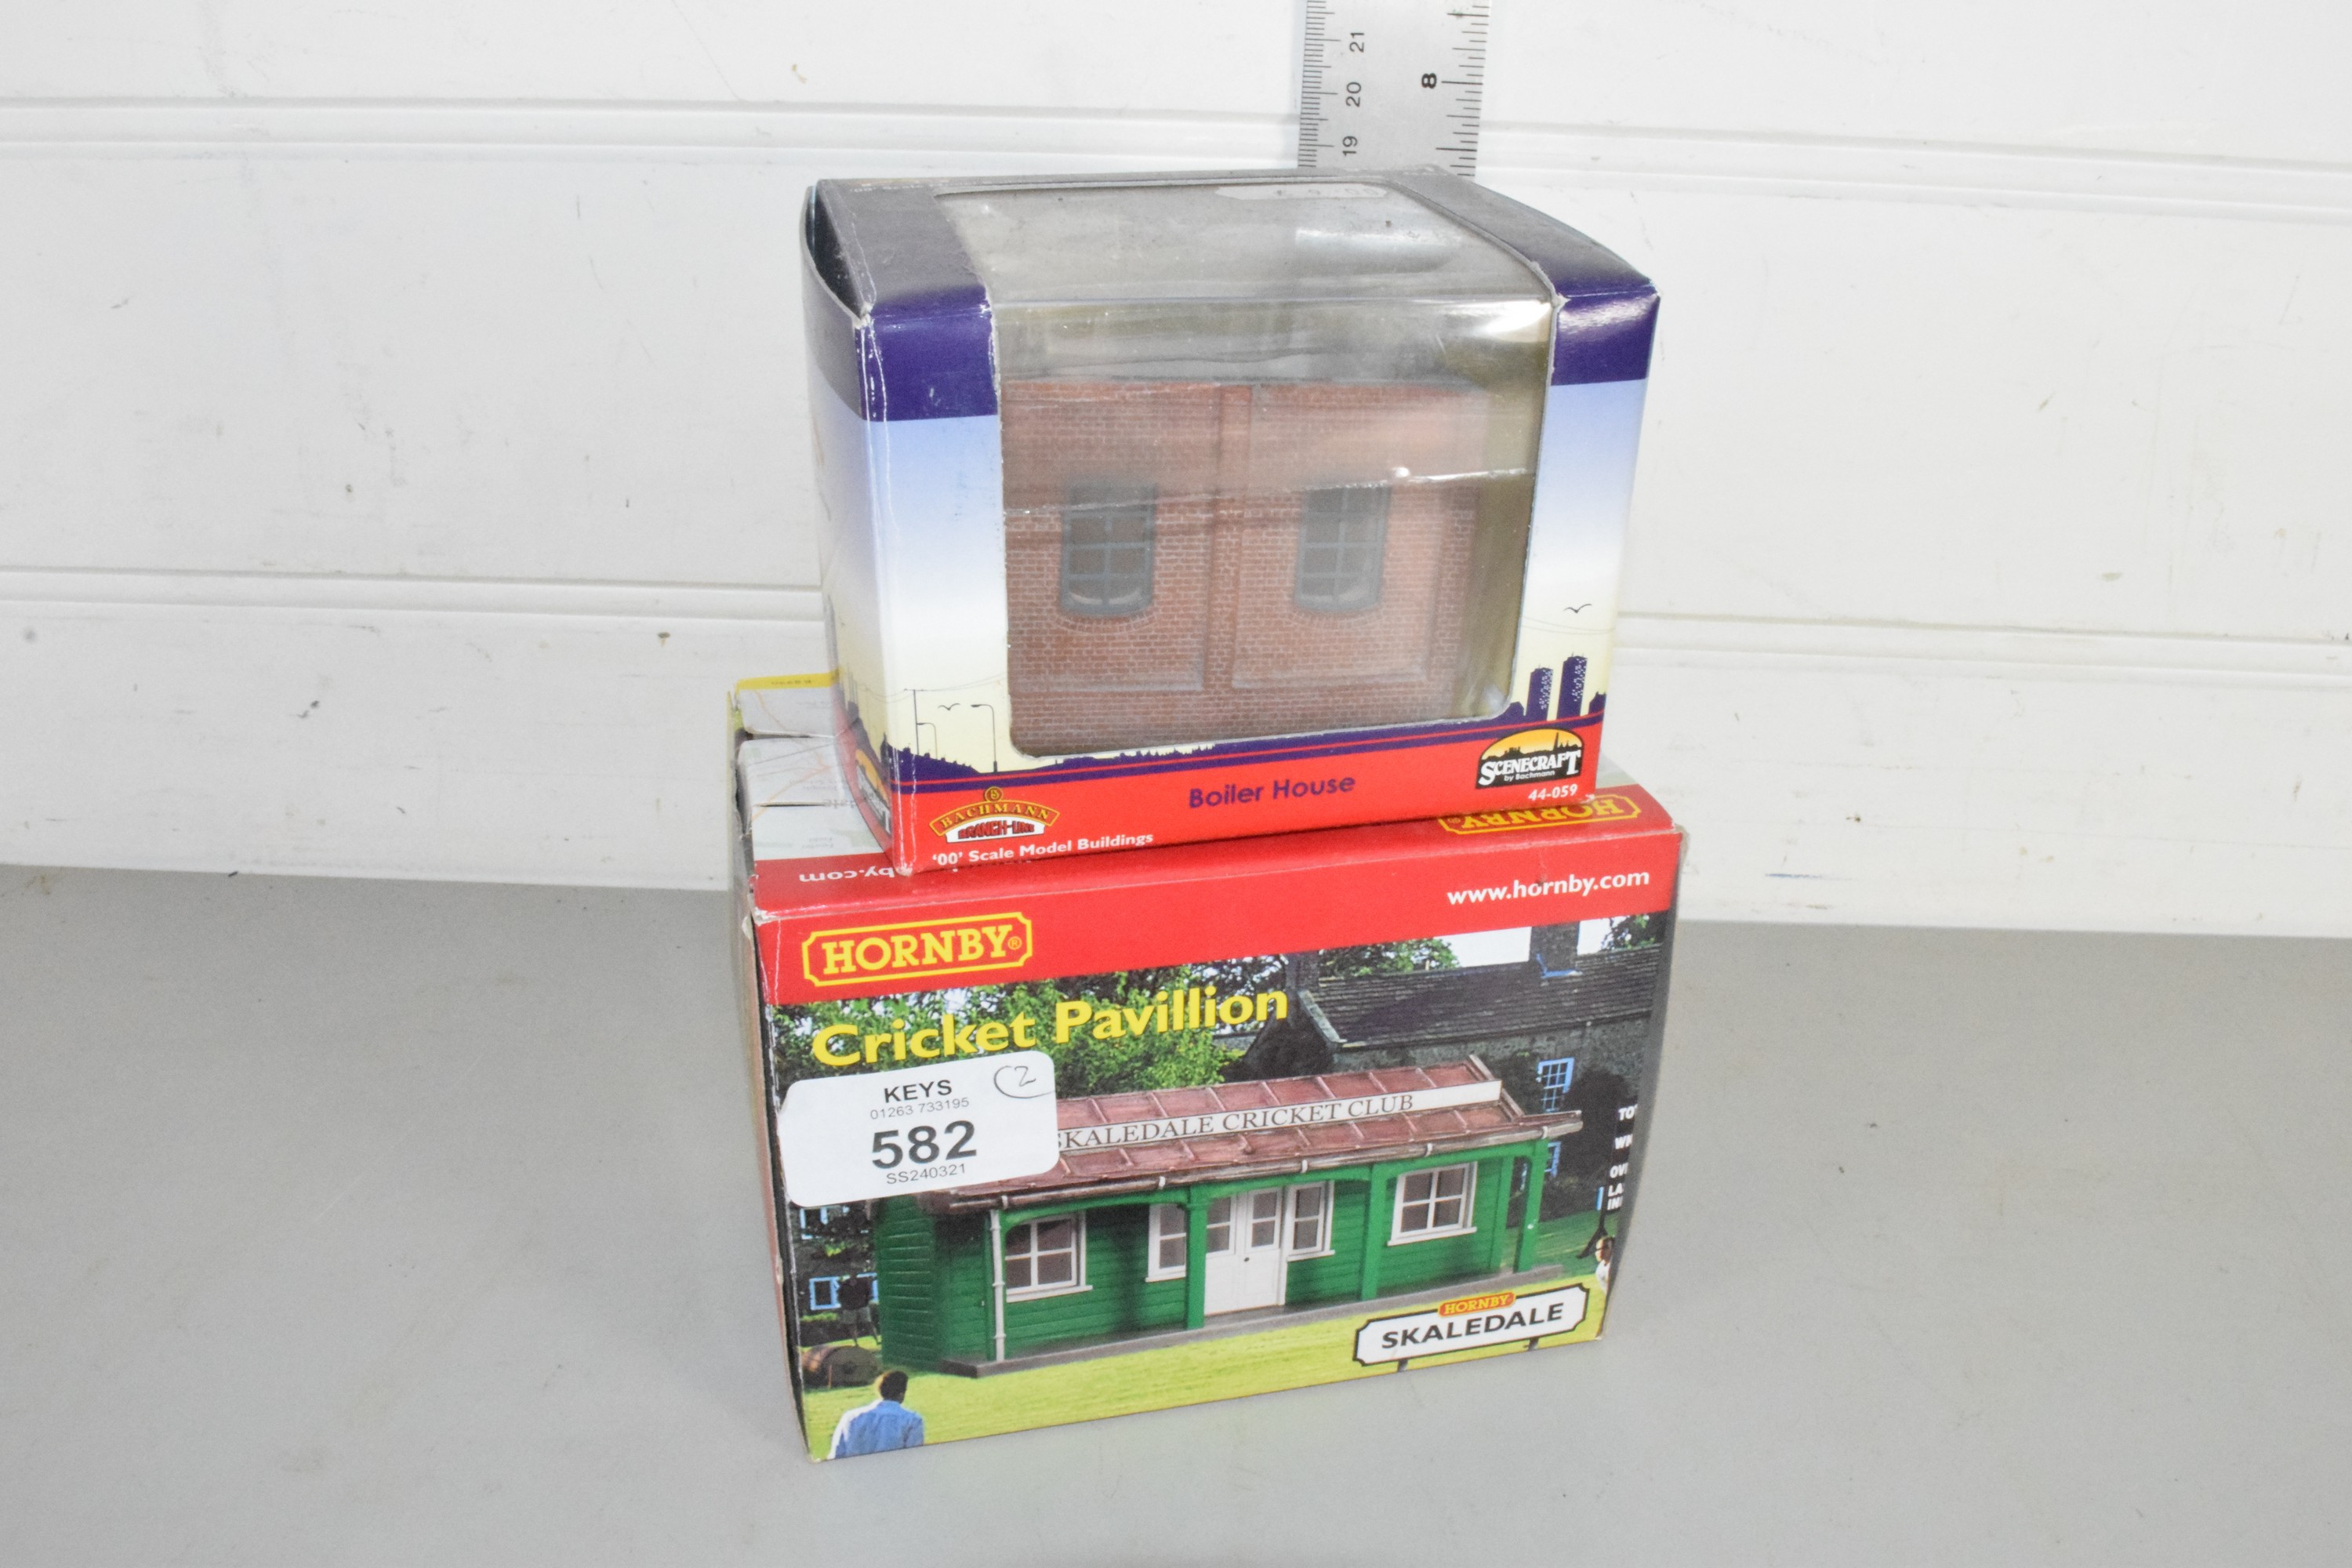 Boxed Hornby cricket pavilion no R8990, together with a Bachmann boiler house no 44-059